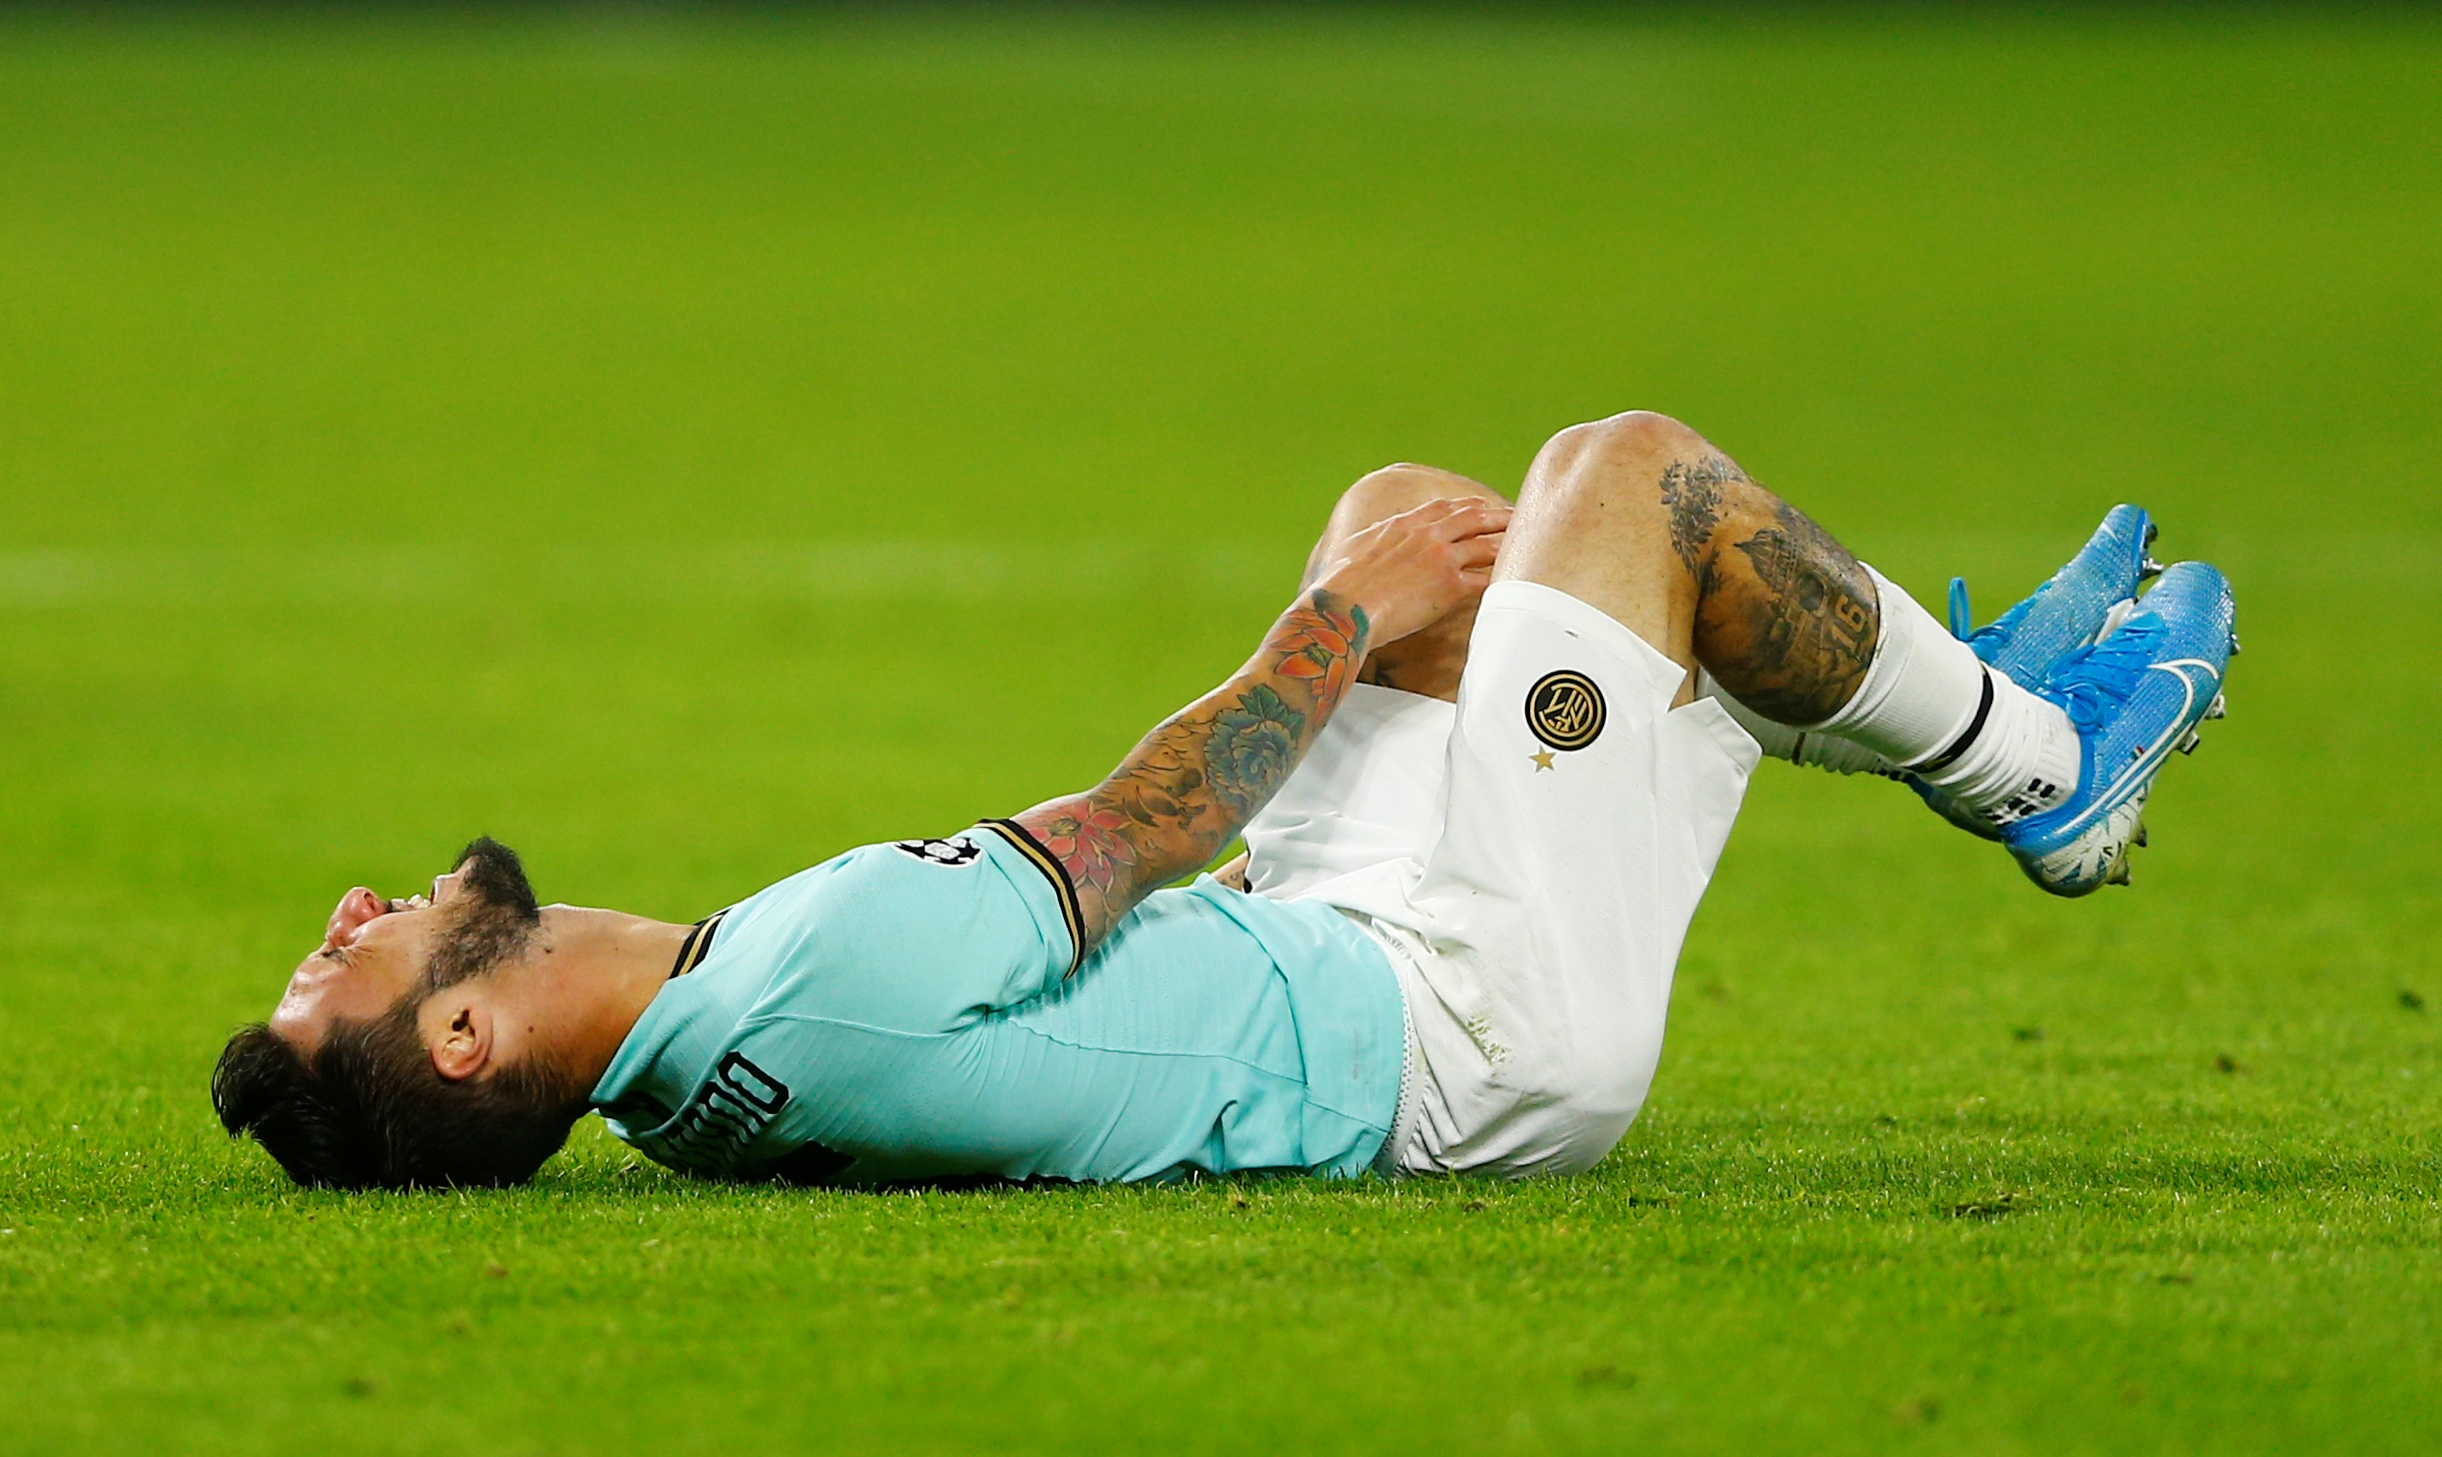 Inter Milan winger Matteo Politano to miss a month with ankle injury